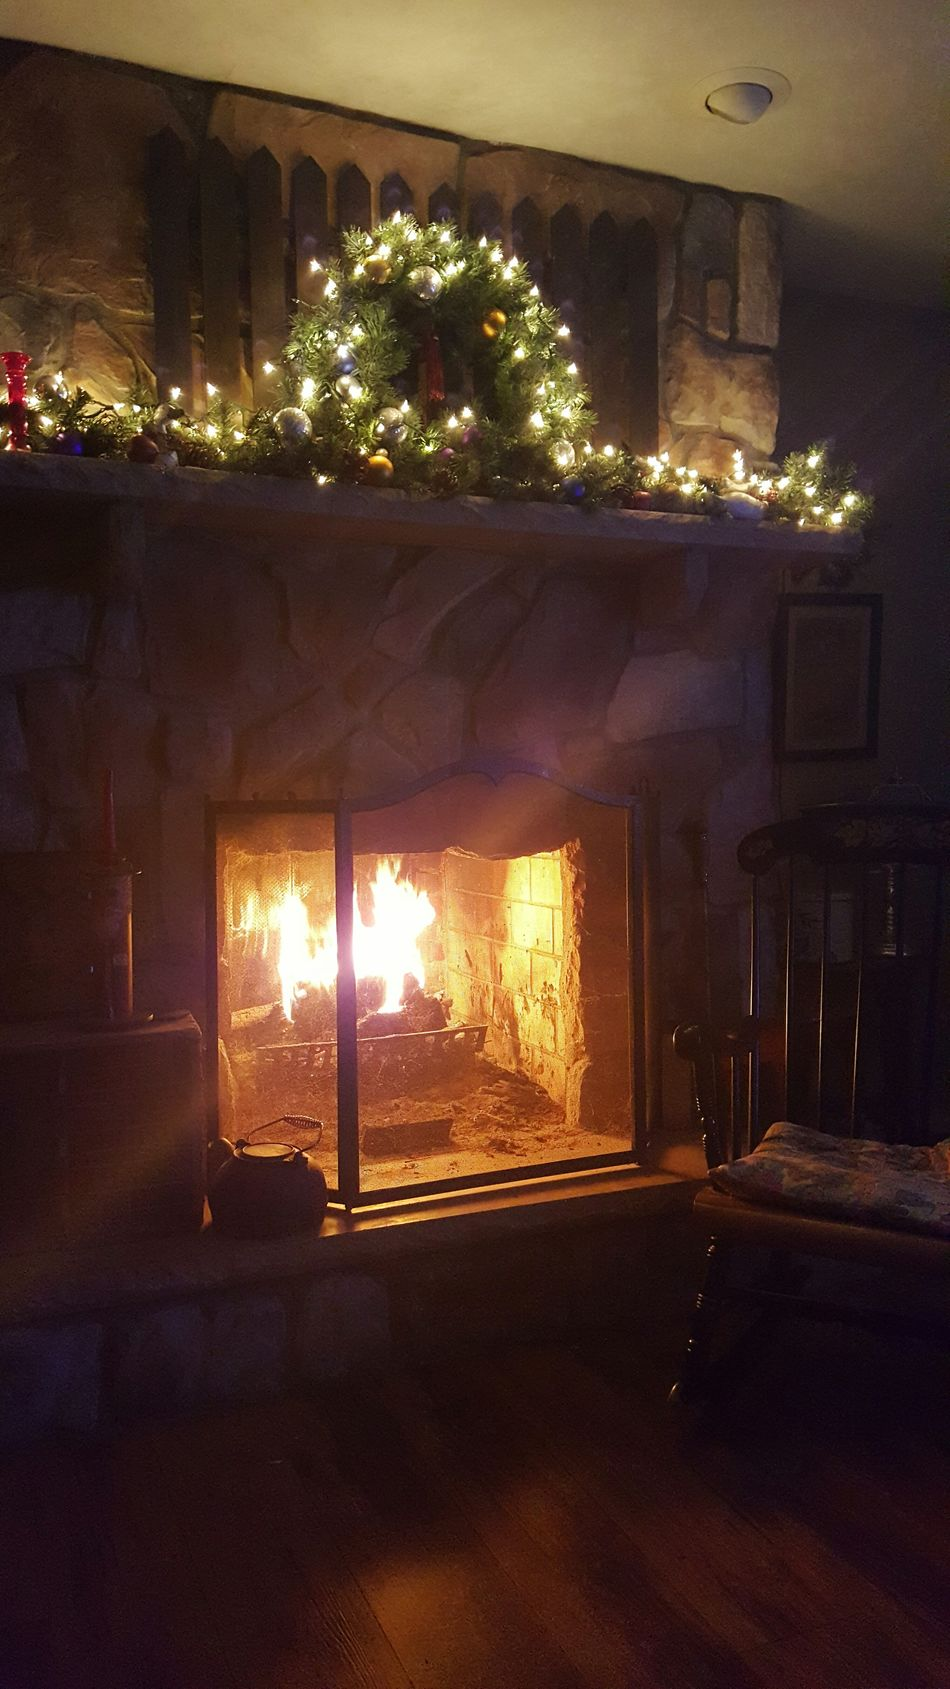 Home Sweet Home Home Home And Hearth Holiday House December Fireside Home Is Where The Art Is Thecultureoftheholidays